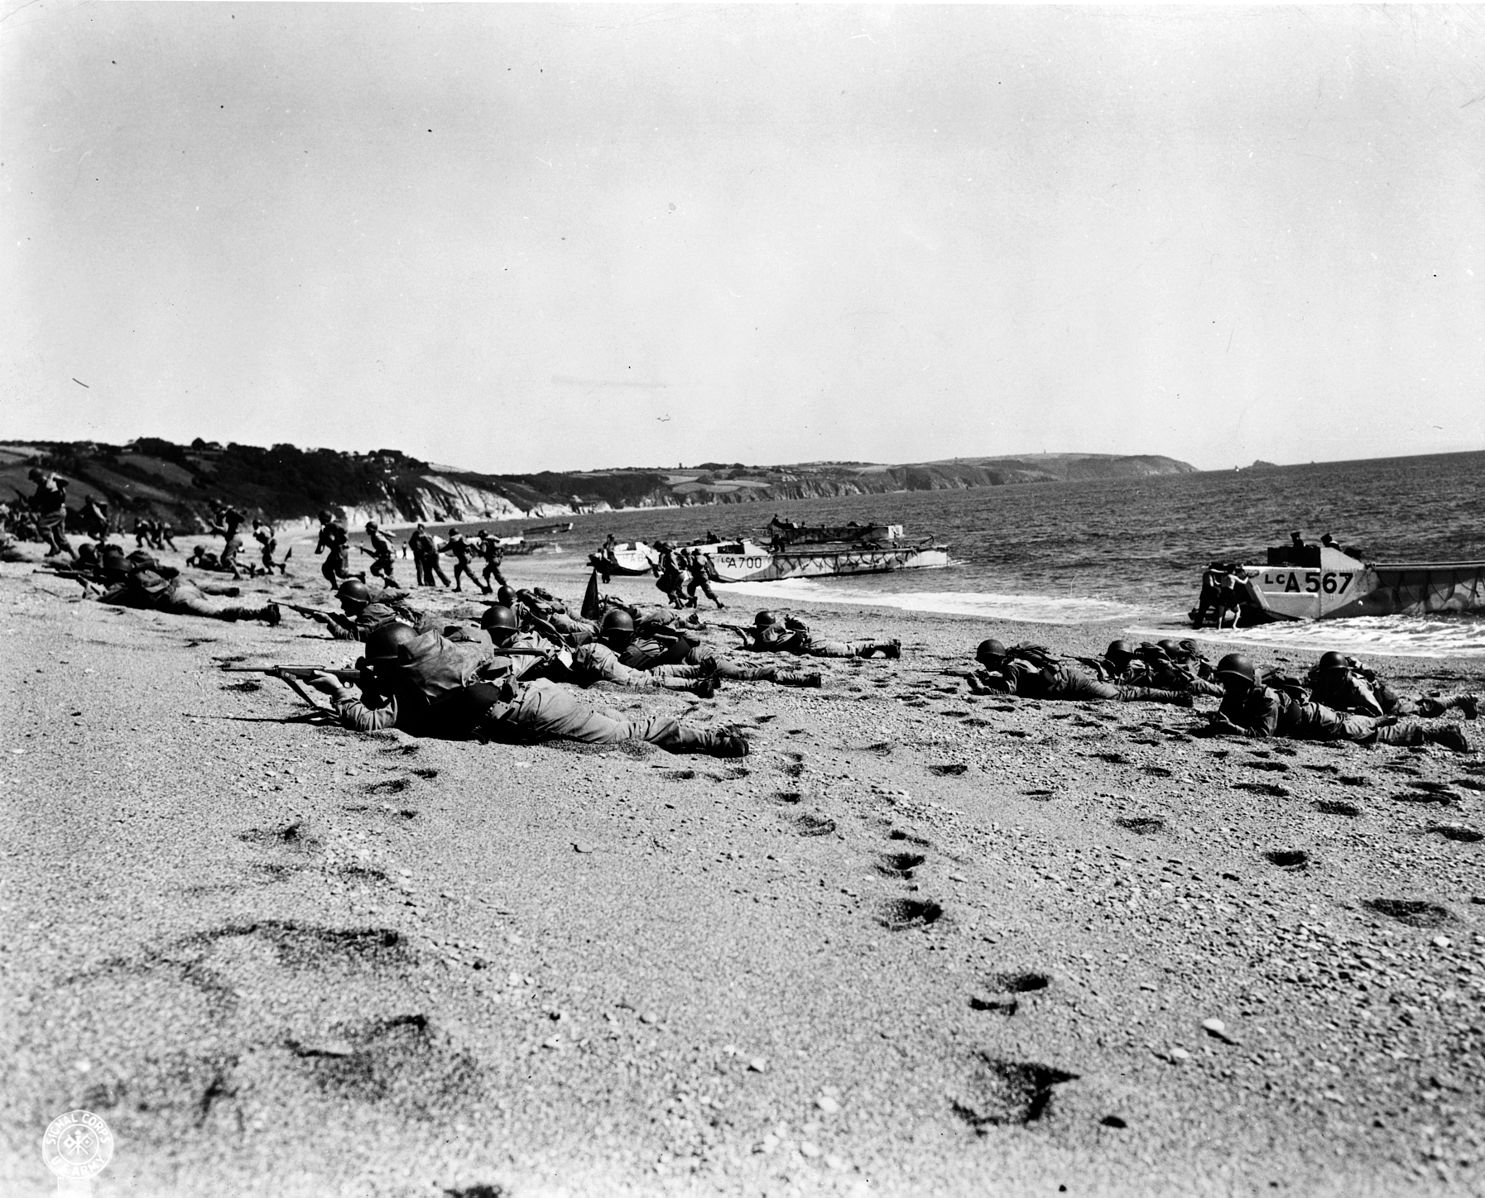 This was the Marine Corps' first amphibious landing